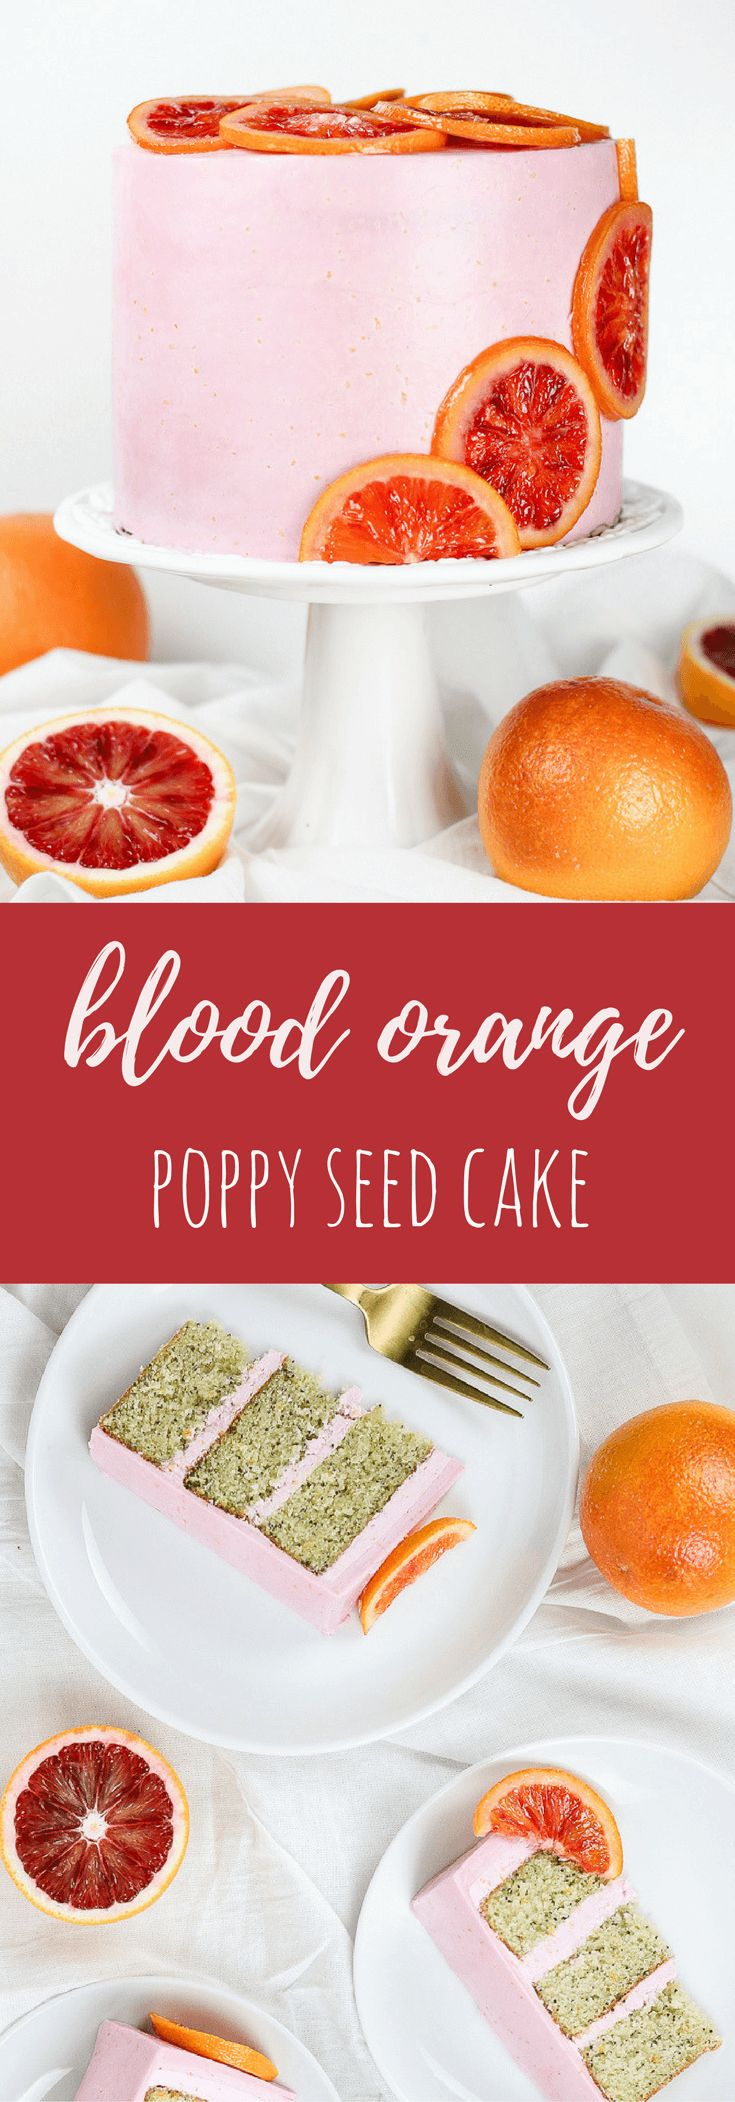 This blood orange poppy seed layer cake is frosted with a blood orange Swiss meringue buttercream and garnished with candied orange slices.